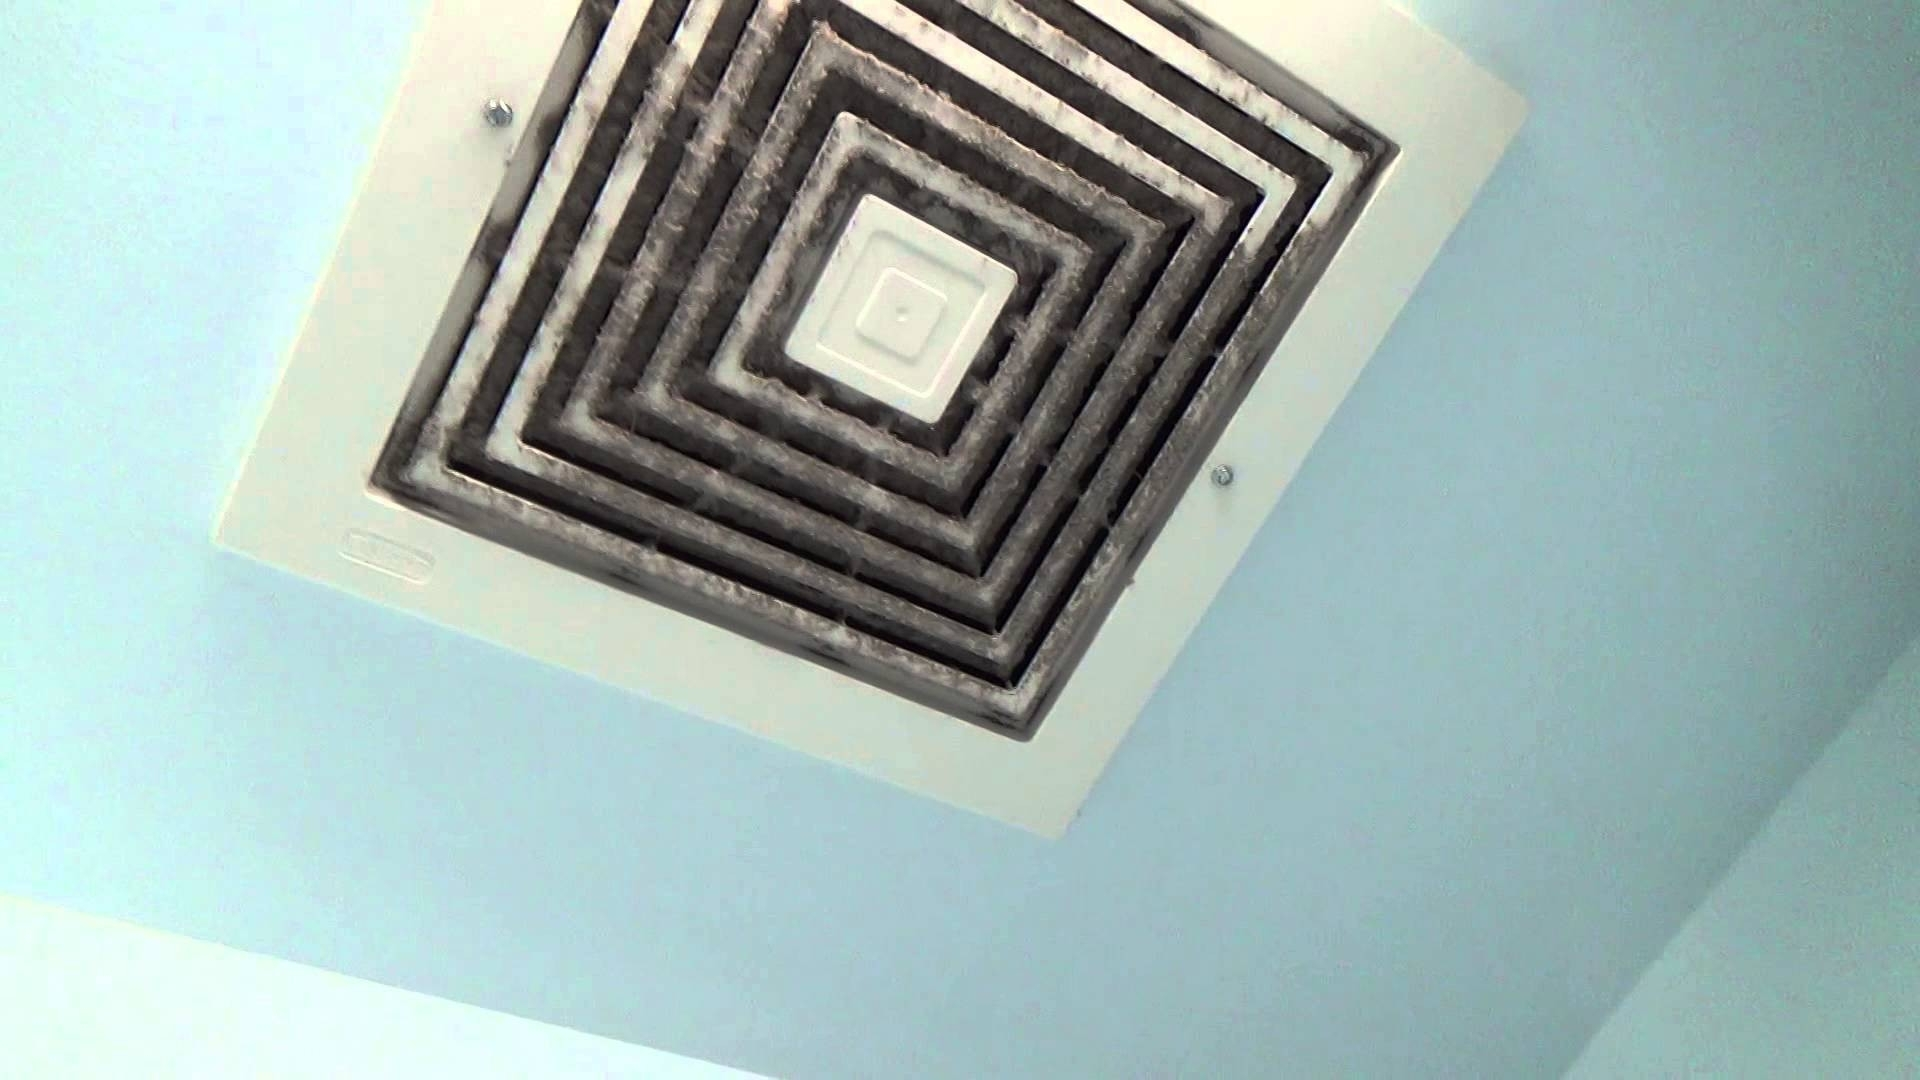 Installing Exhaust Fan Cover